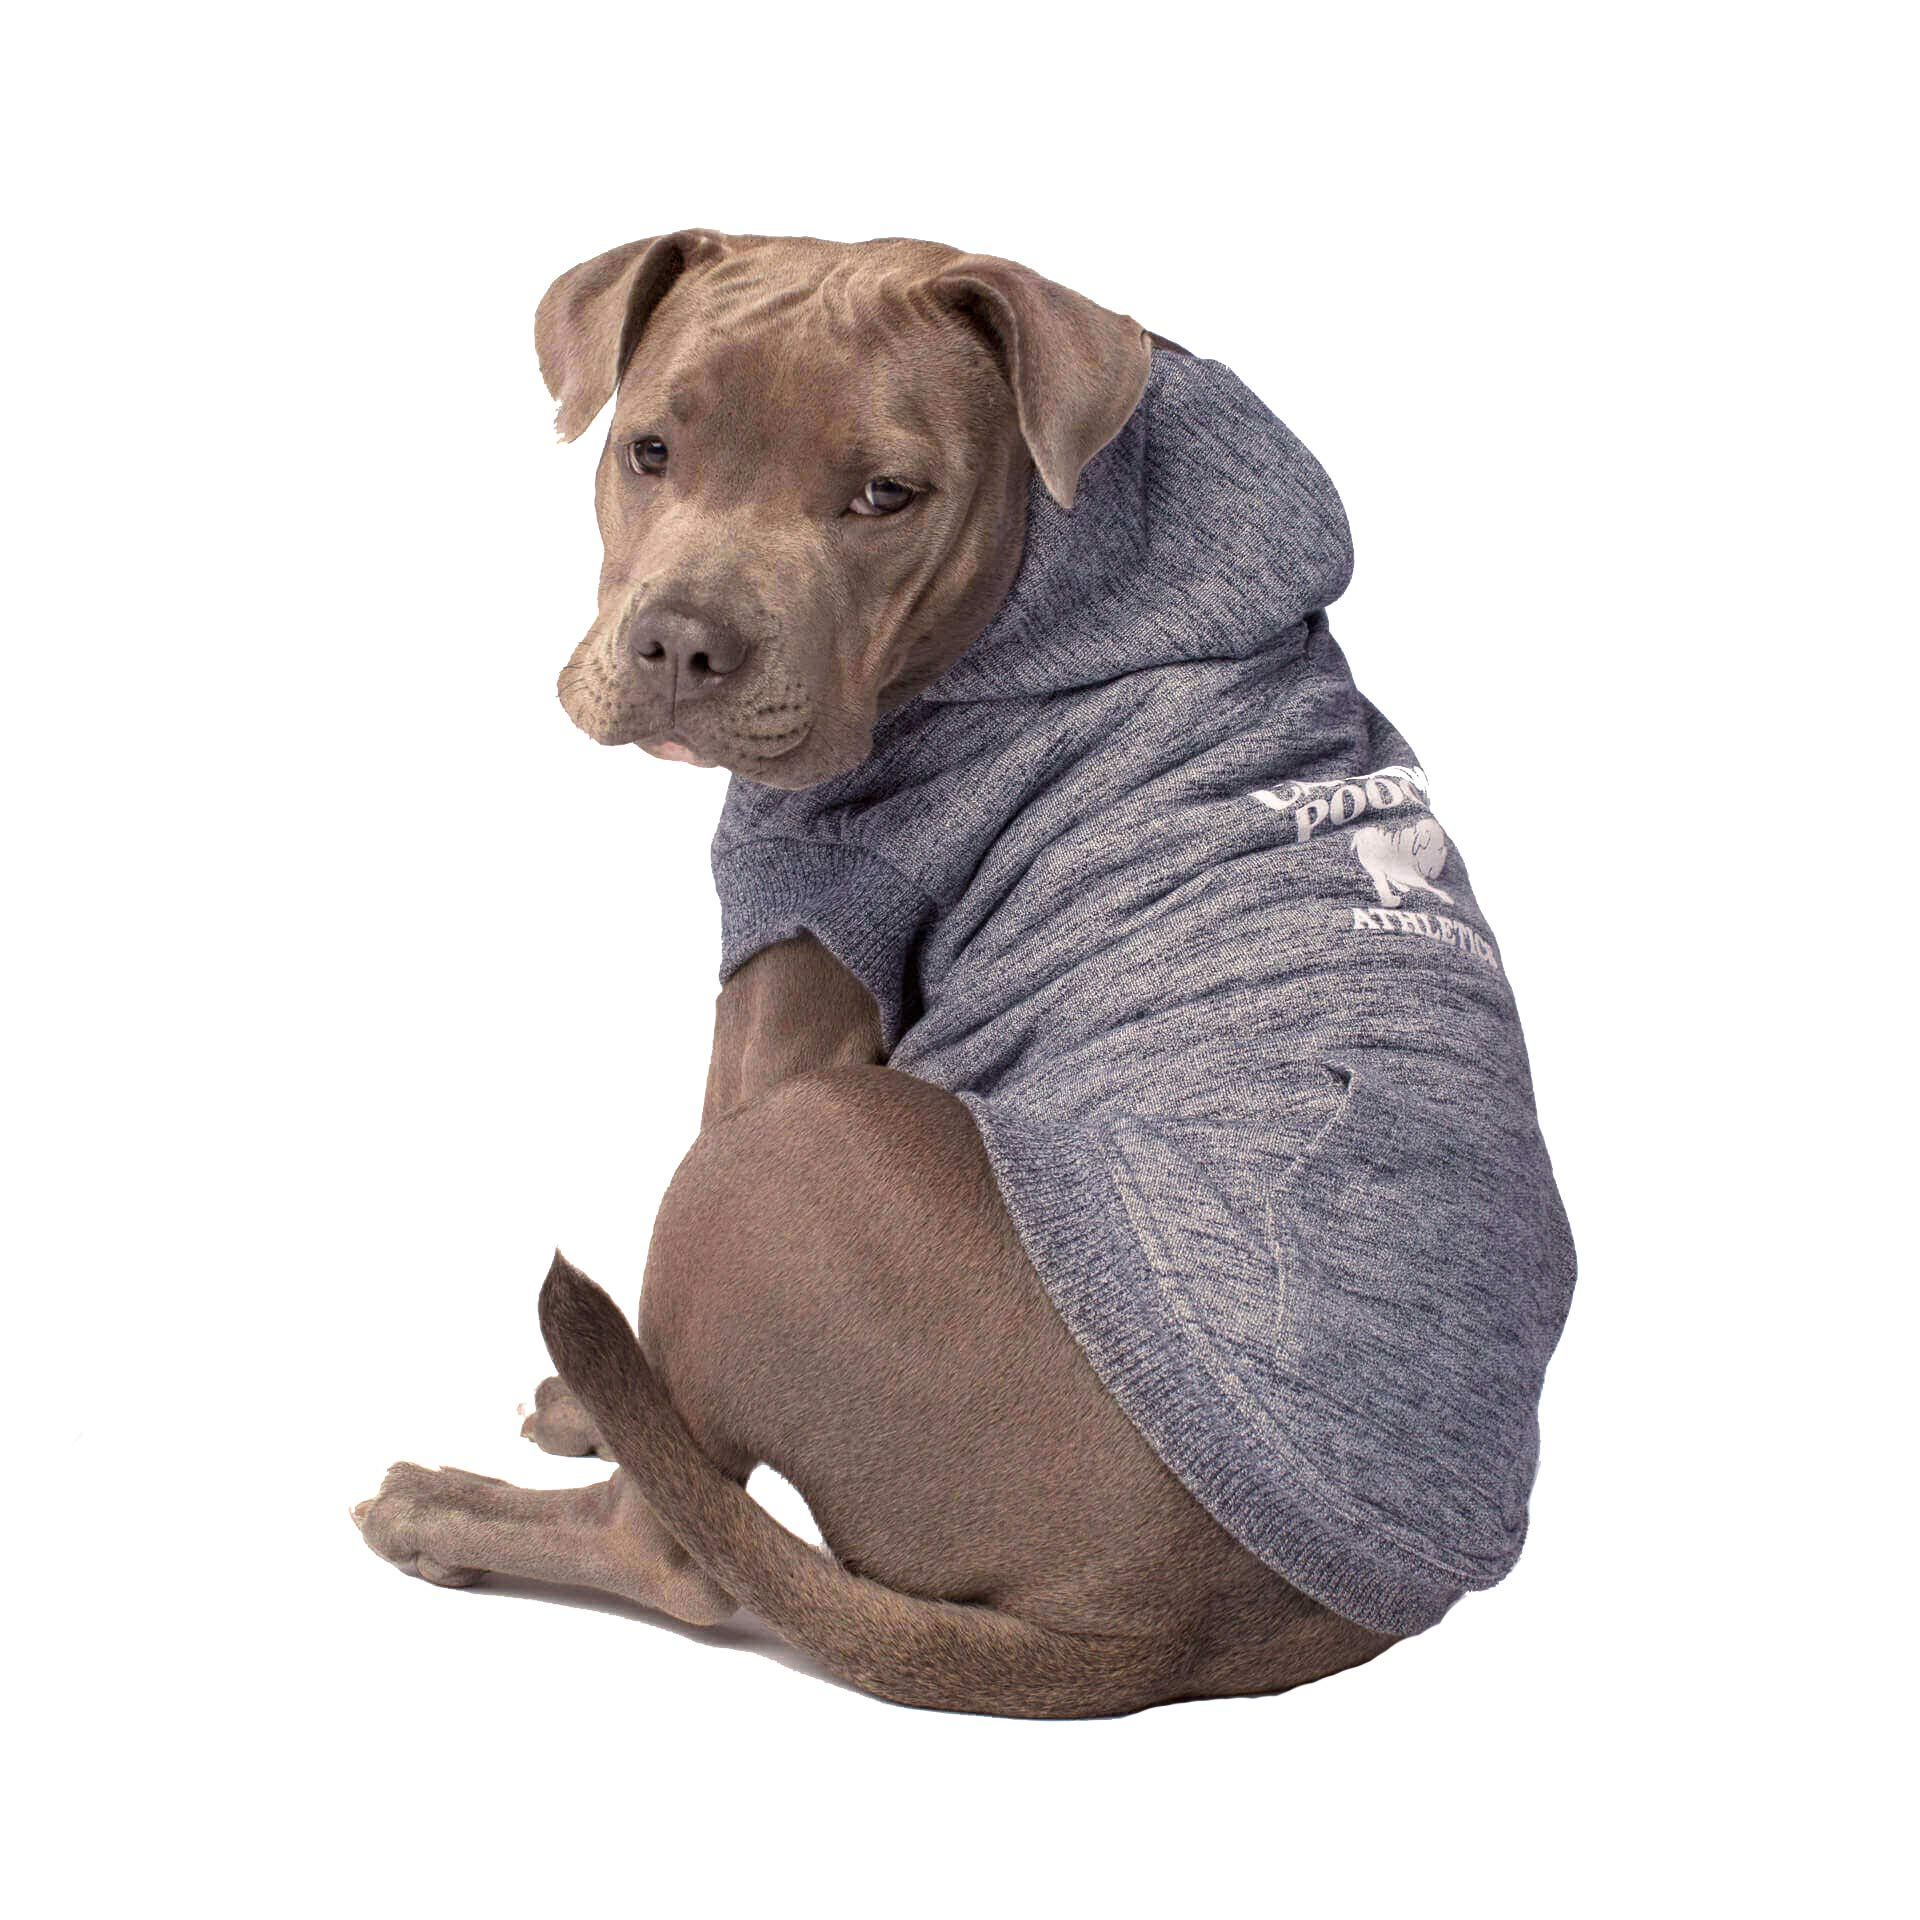 Canada Pooch Cozy Caribou Sherpa Lined Fleece Dog Hoodie, Charcoal, Size 26 by Canada Pooch